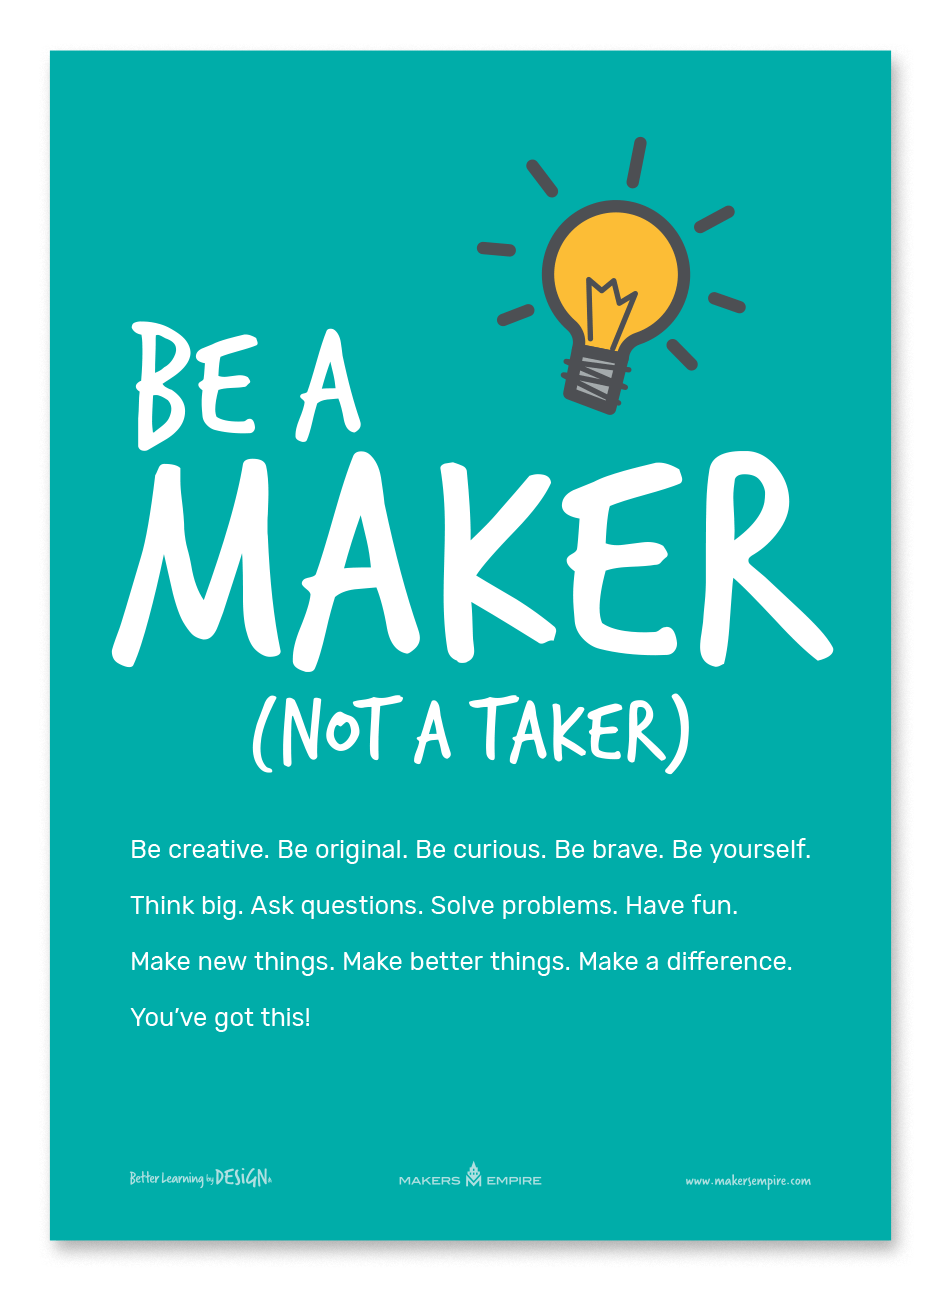 Makers Empire Be a maker poster